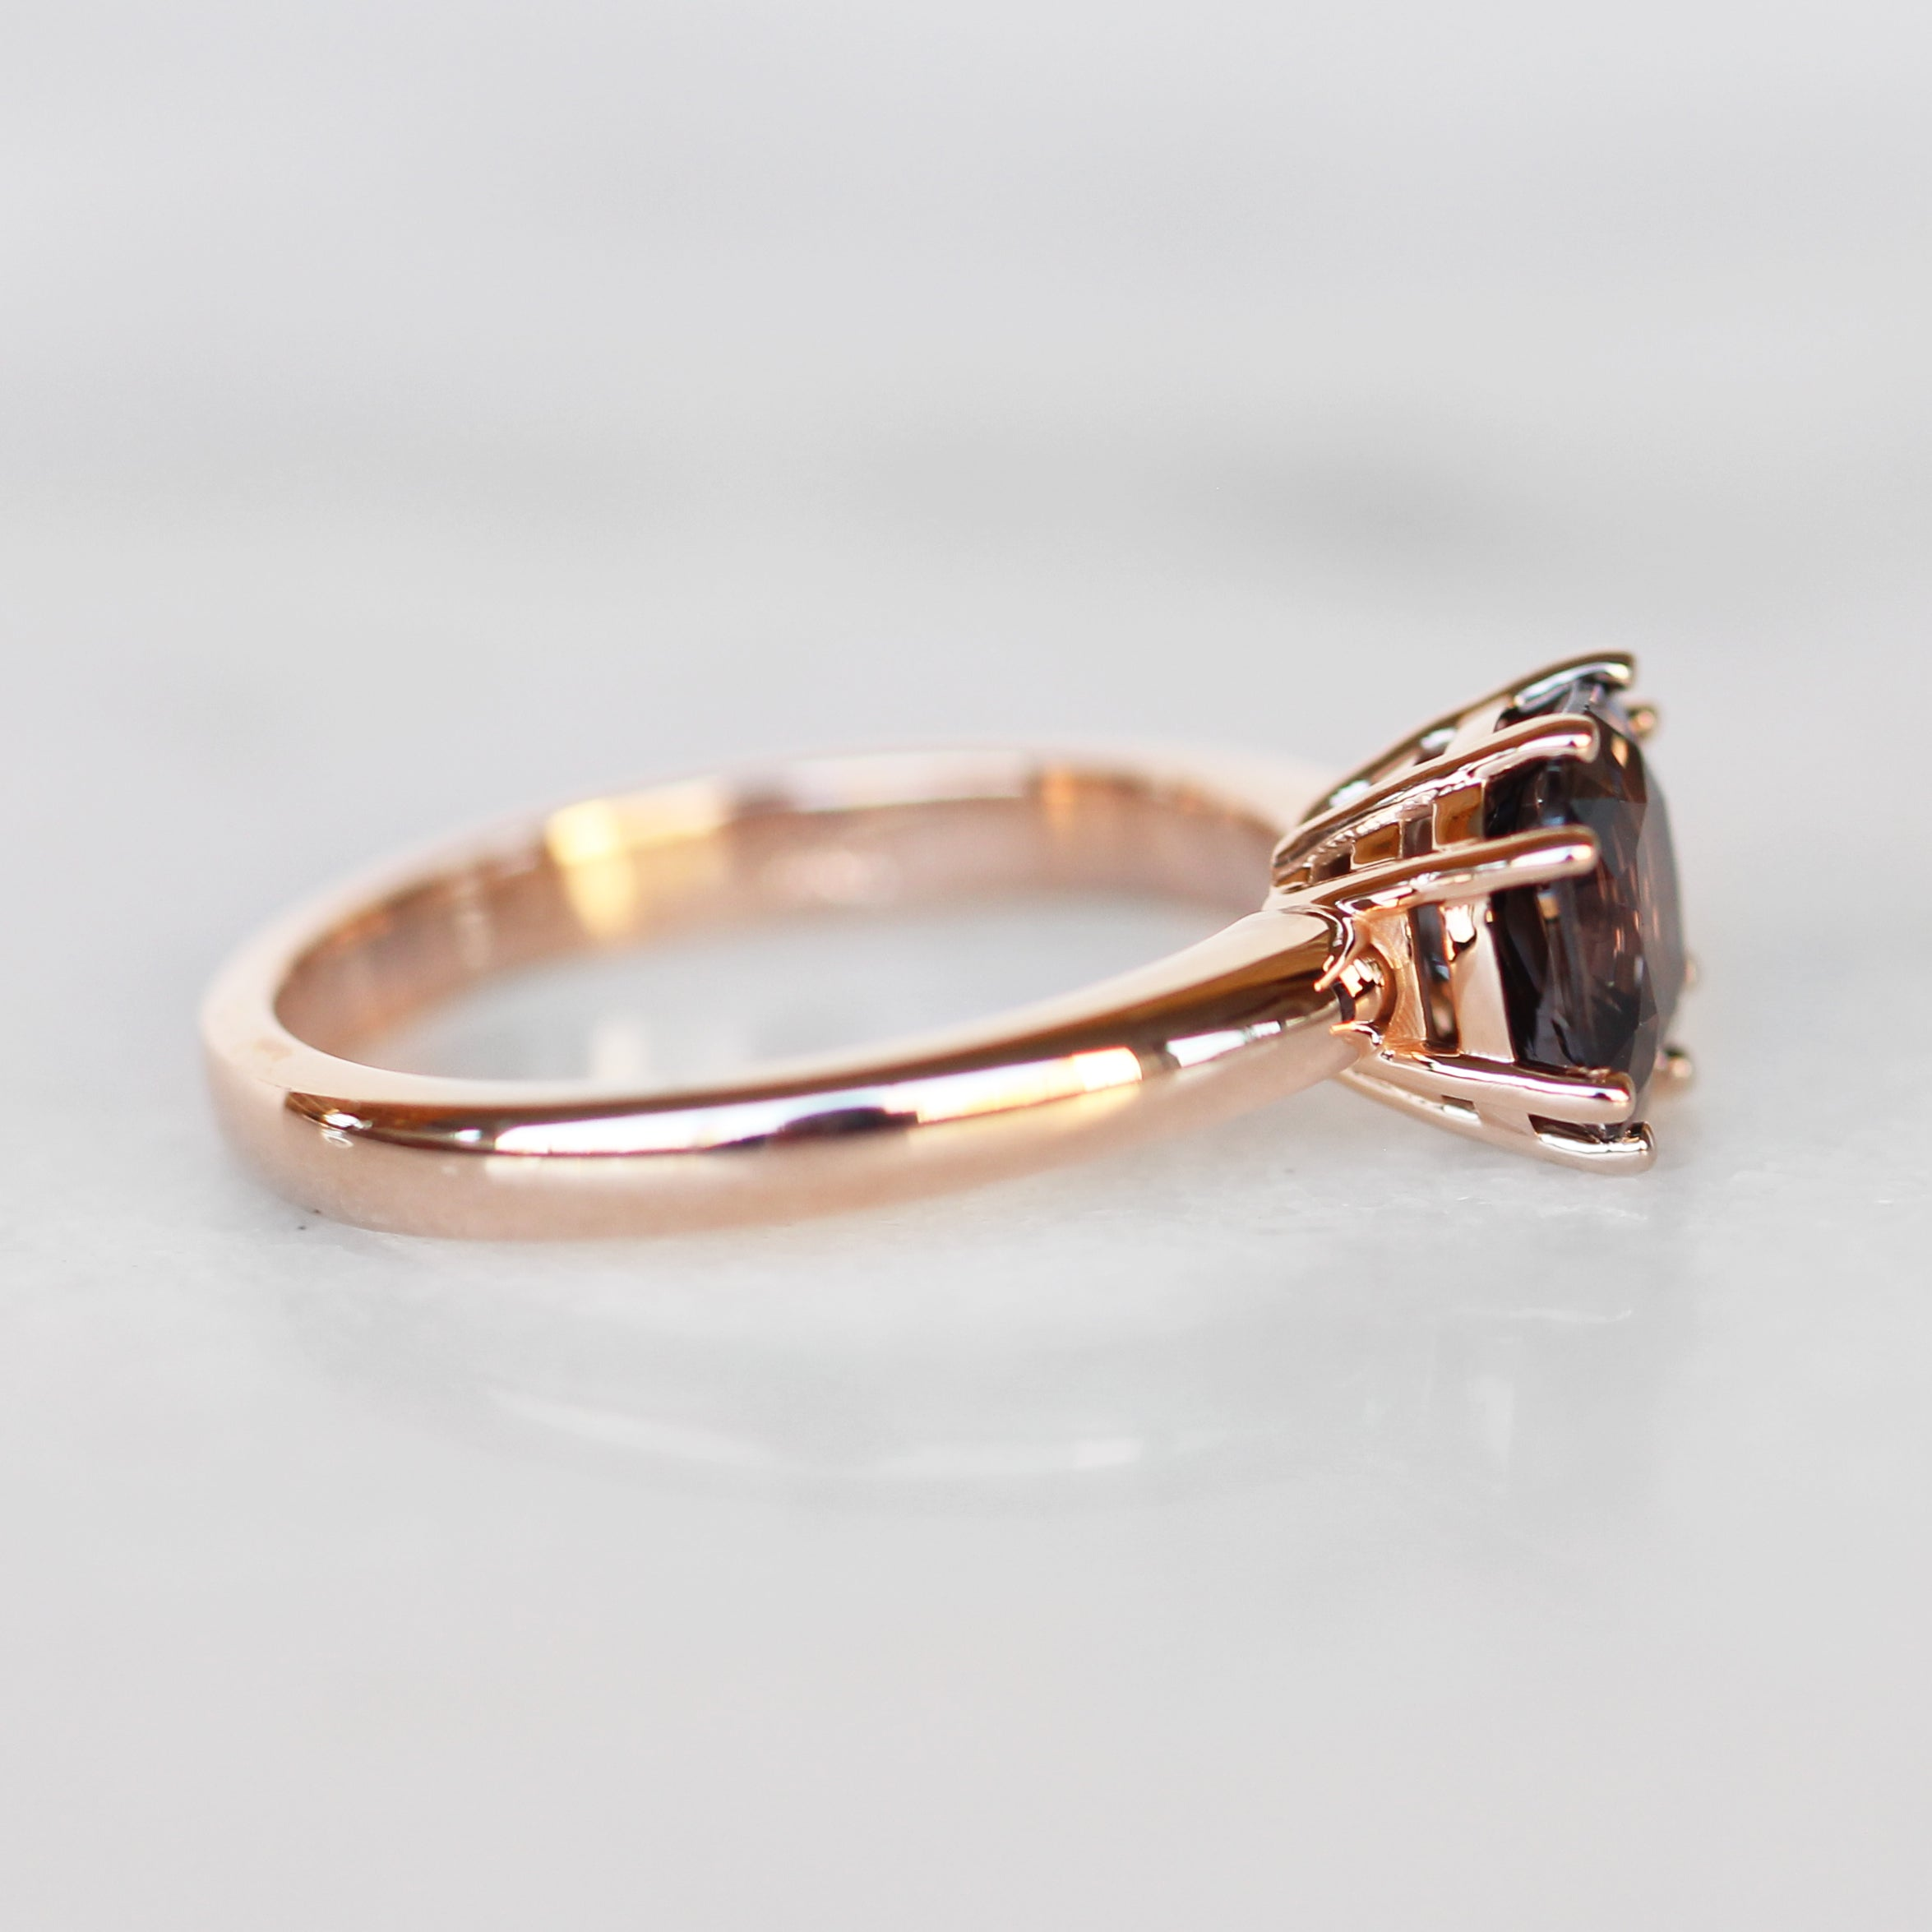 Katrina Ring with 1.93 Carat Cushion Spinel in 10k Rose Gold- Ready to Size and Ship - Celestial Diamonds ® by Midwinter Co.